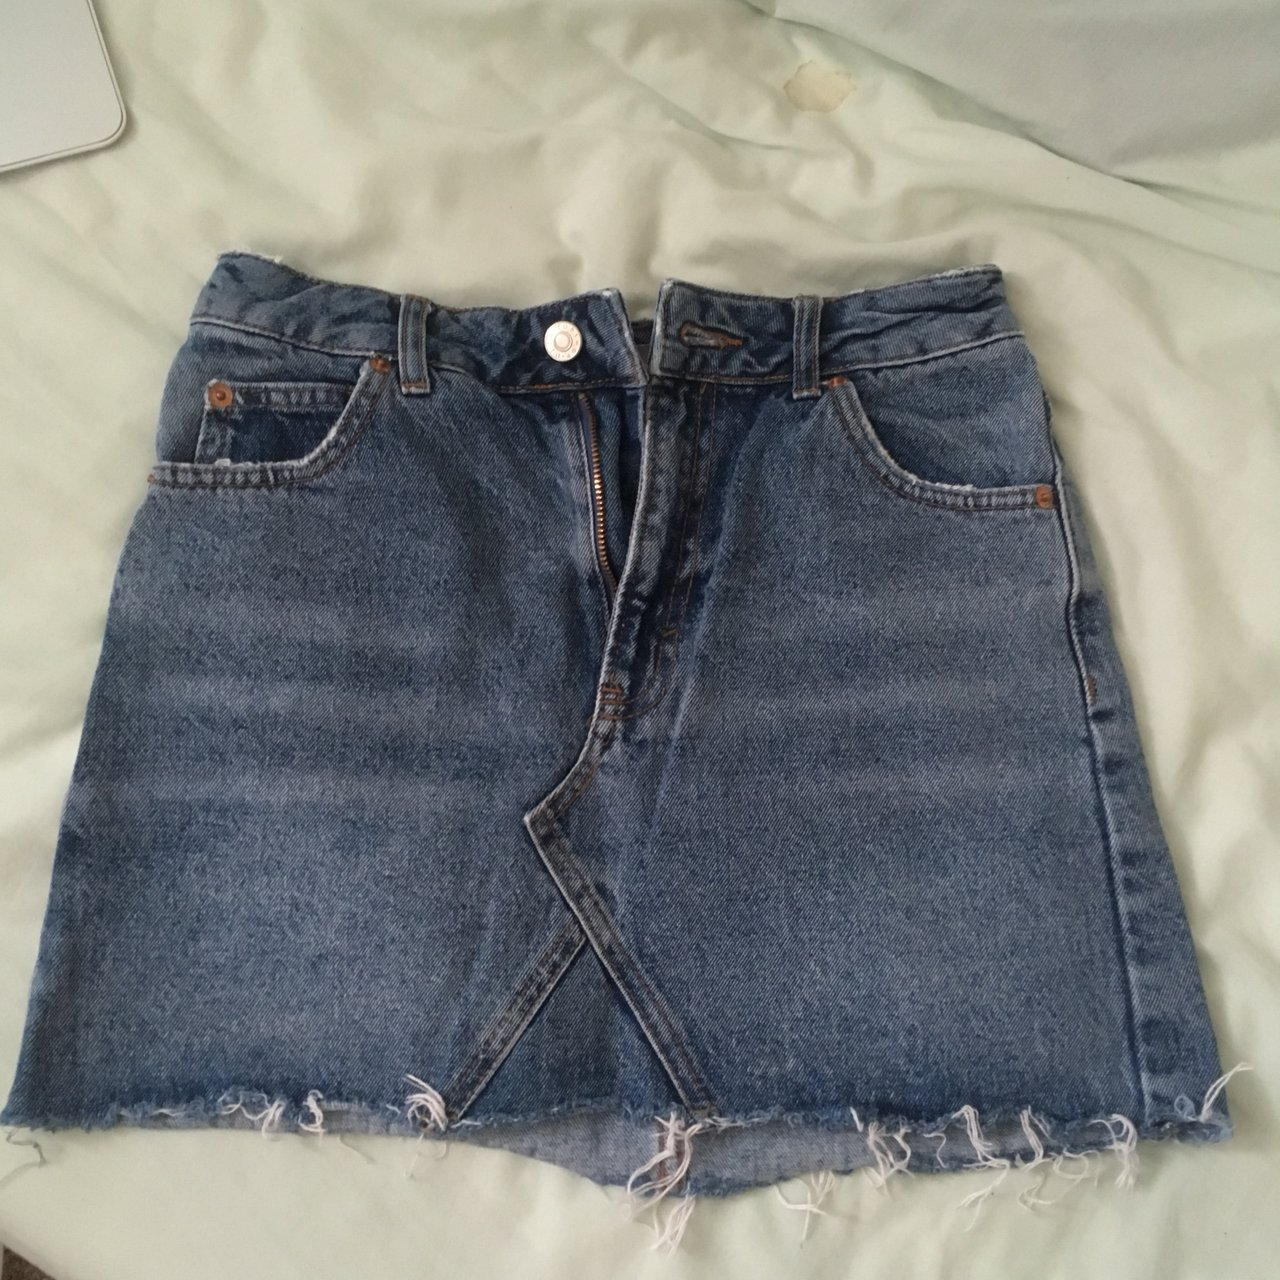 0d68c5f0 Topshop denim skirt size 6 Good